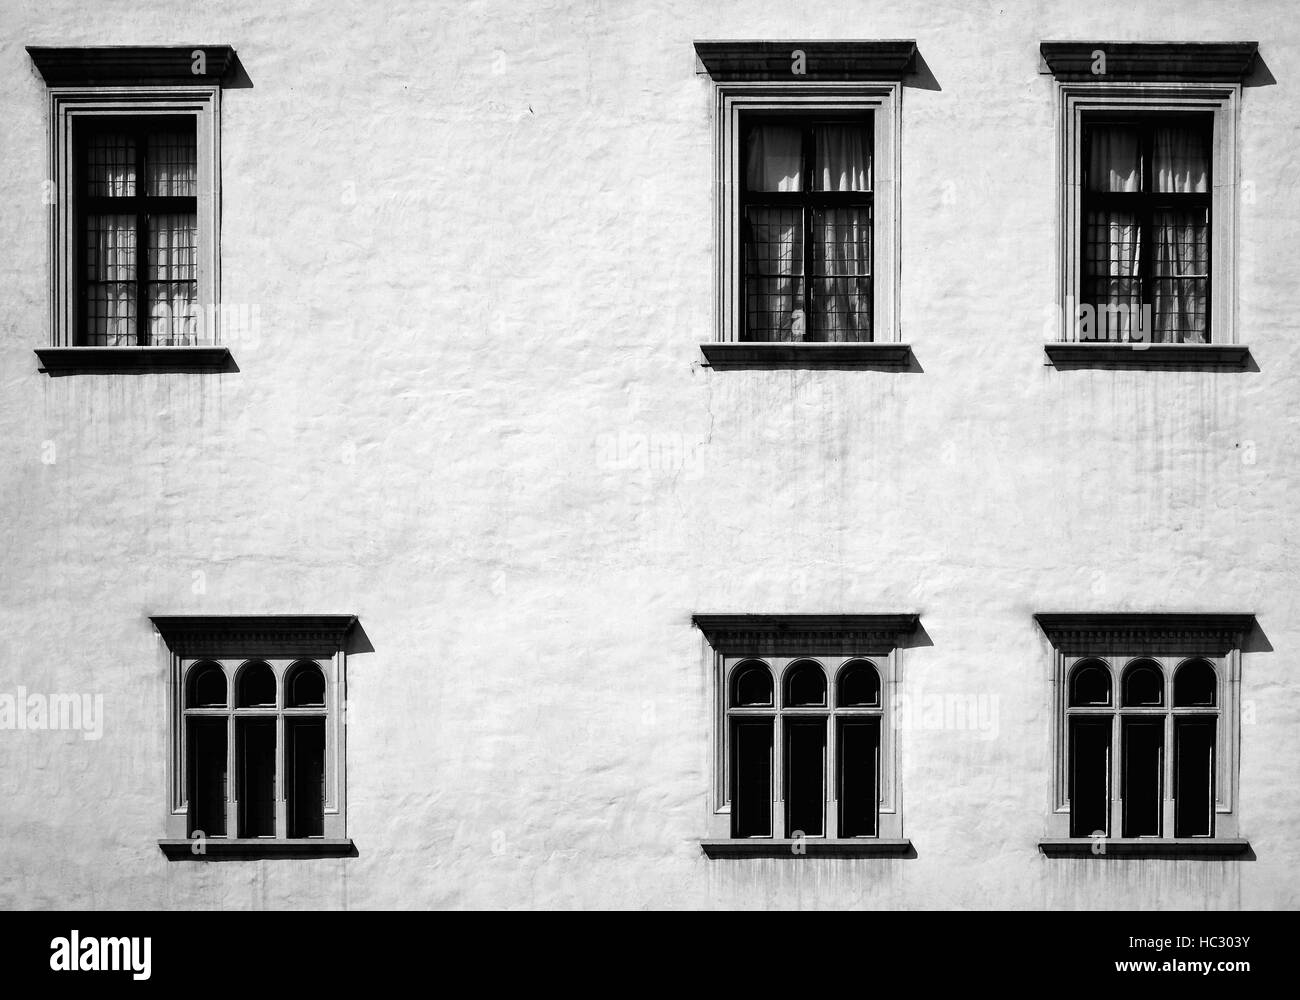 windows black and white in uneven row - Stock Image